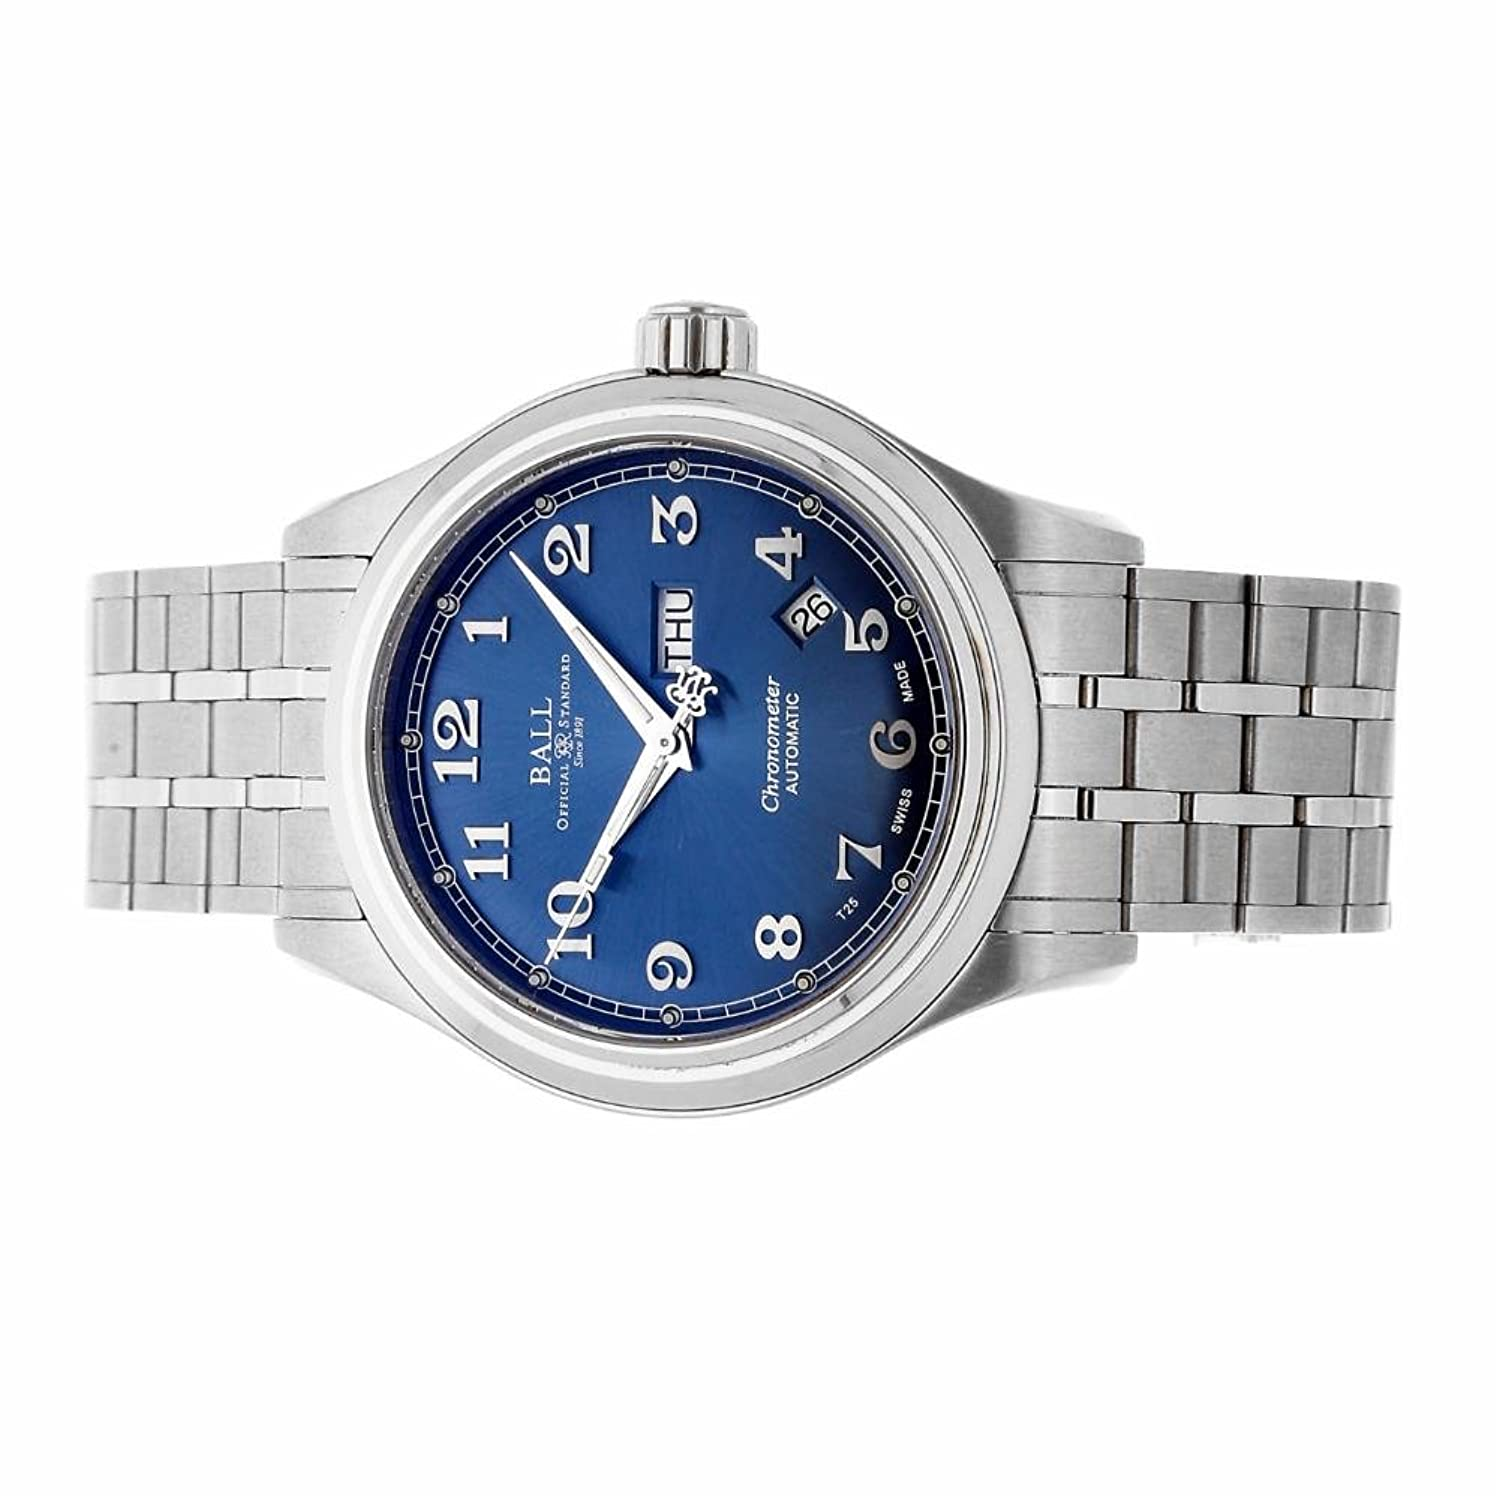 Amazon.com: Ball Watch Company Trainmaster automatic-self-wind mens Watch NM1058D-SCJ-SL (Certified Pre-owned): Ball Watch Company: Watches